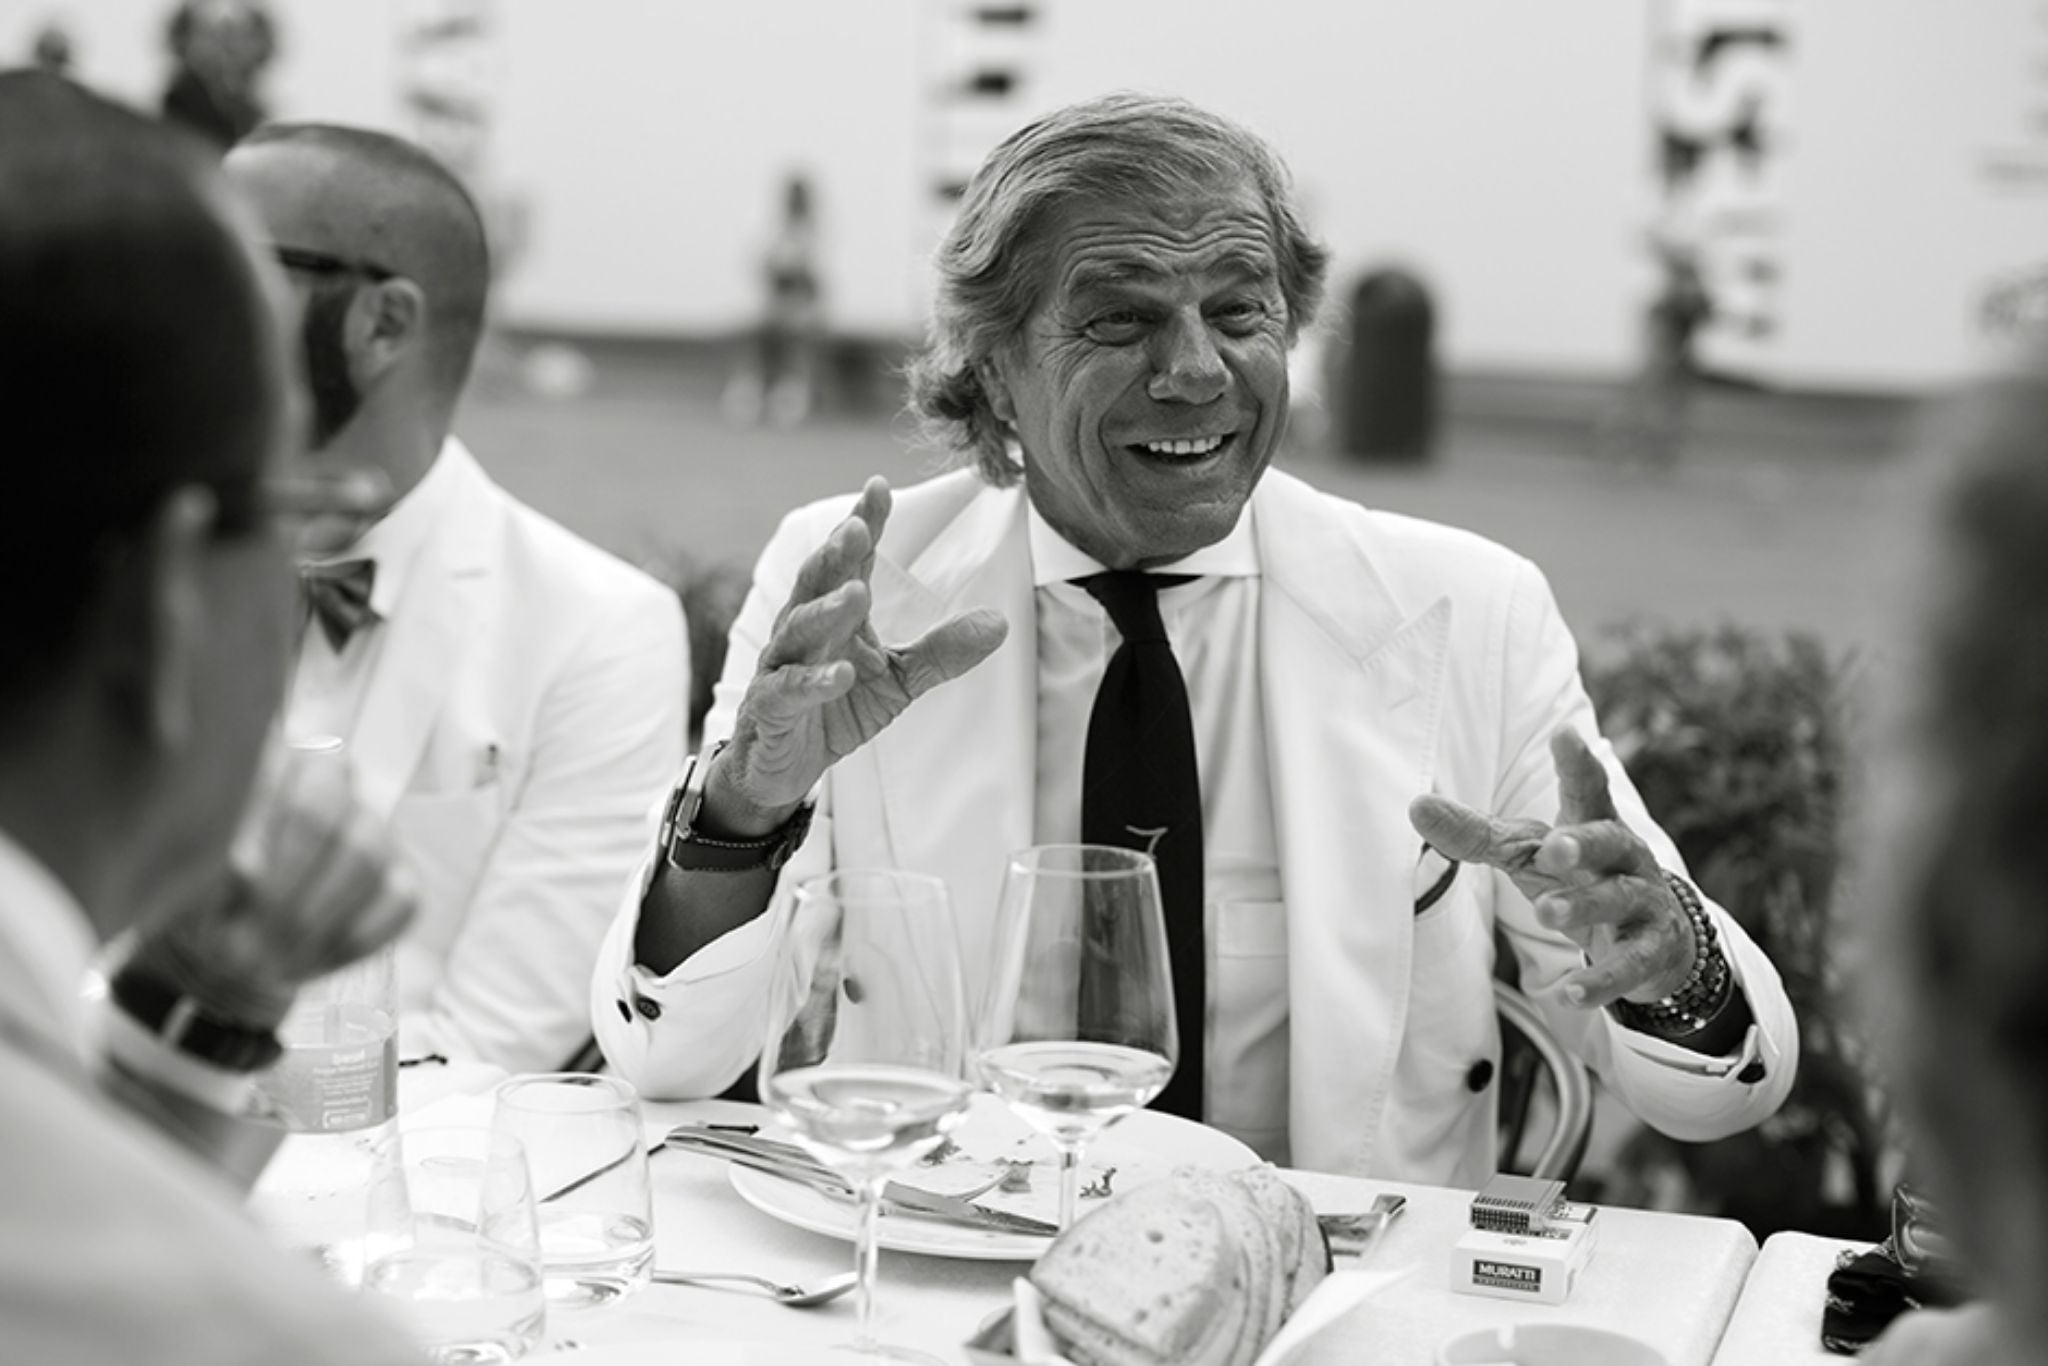 Lino Ielluzzi wearing double-breasted white suit - the Sartorialist dinner